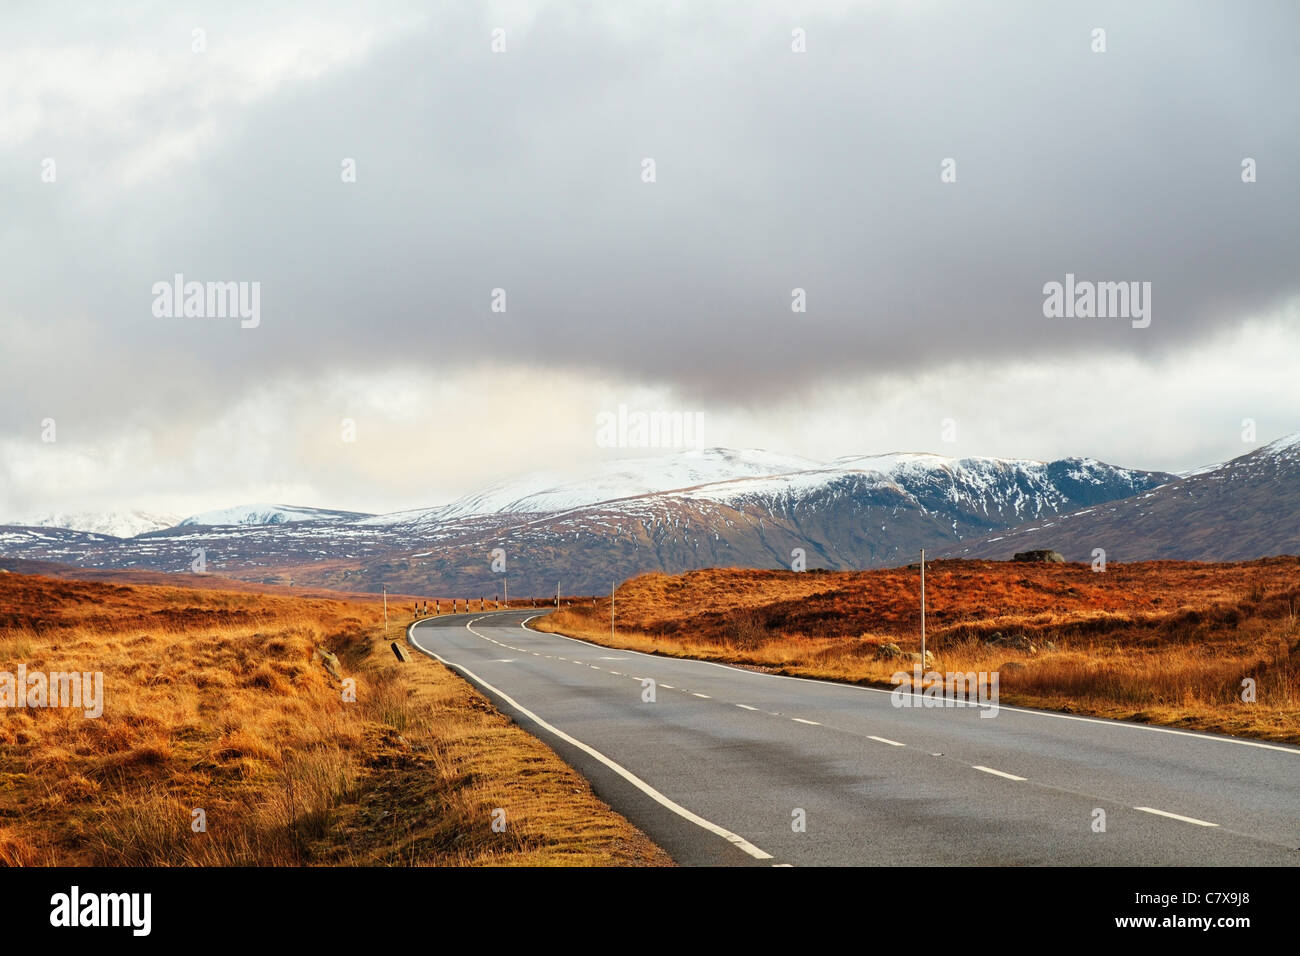 A82 Trunk Road over Rannoch Moor Looking South East, Highland Region, Scotland, United Kingdom - Stock Image